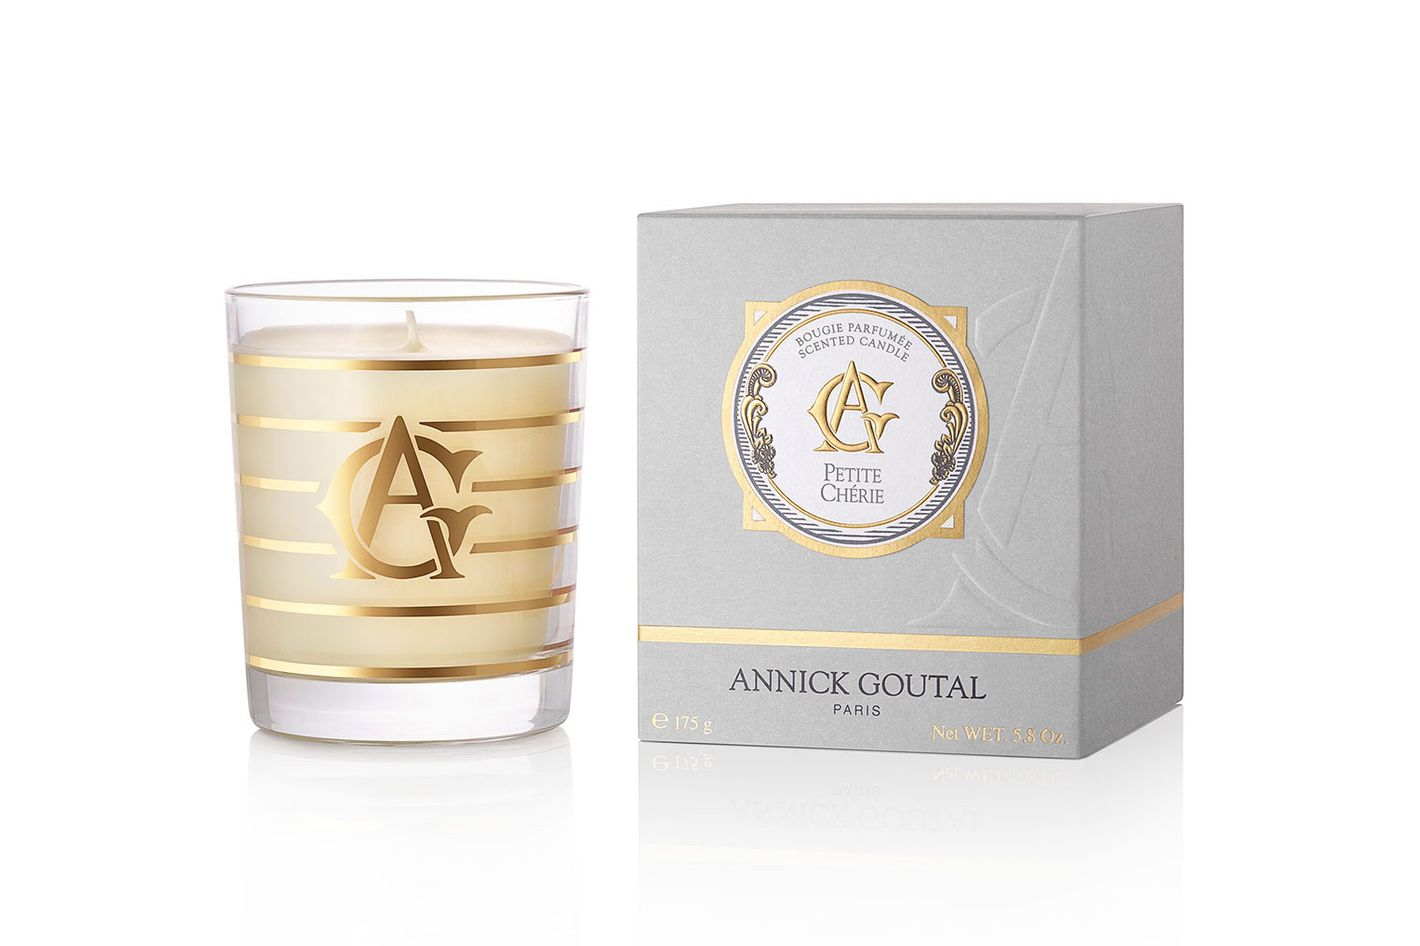 Annick Goutal Pee Cherie Perfumed Candle